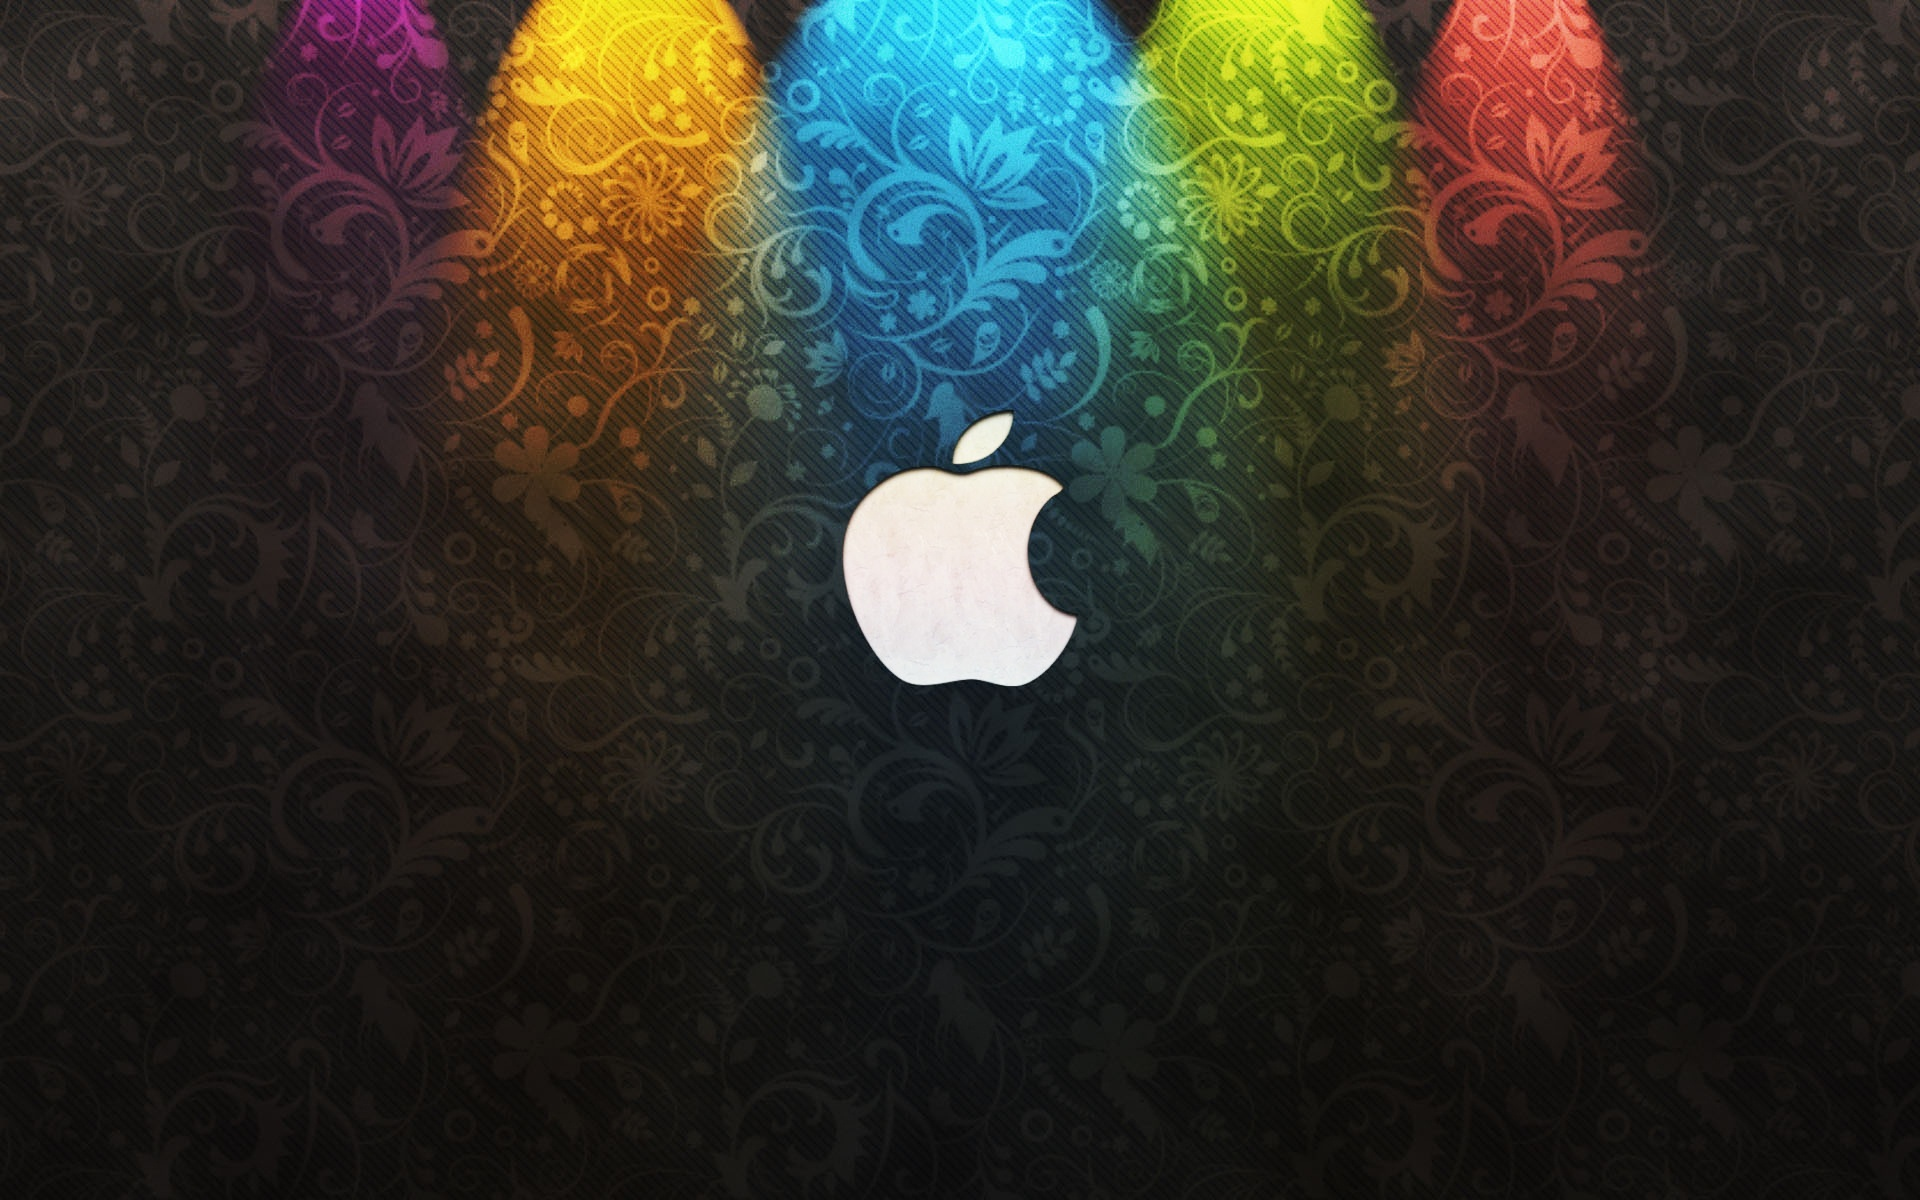 Apple Logo Wallpapers HD rainbow lights